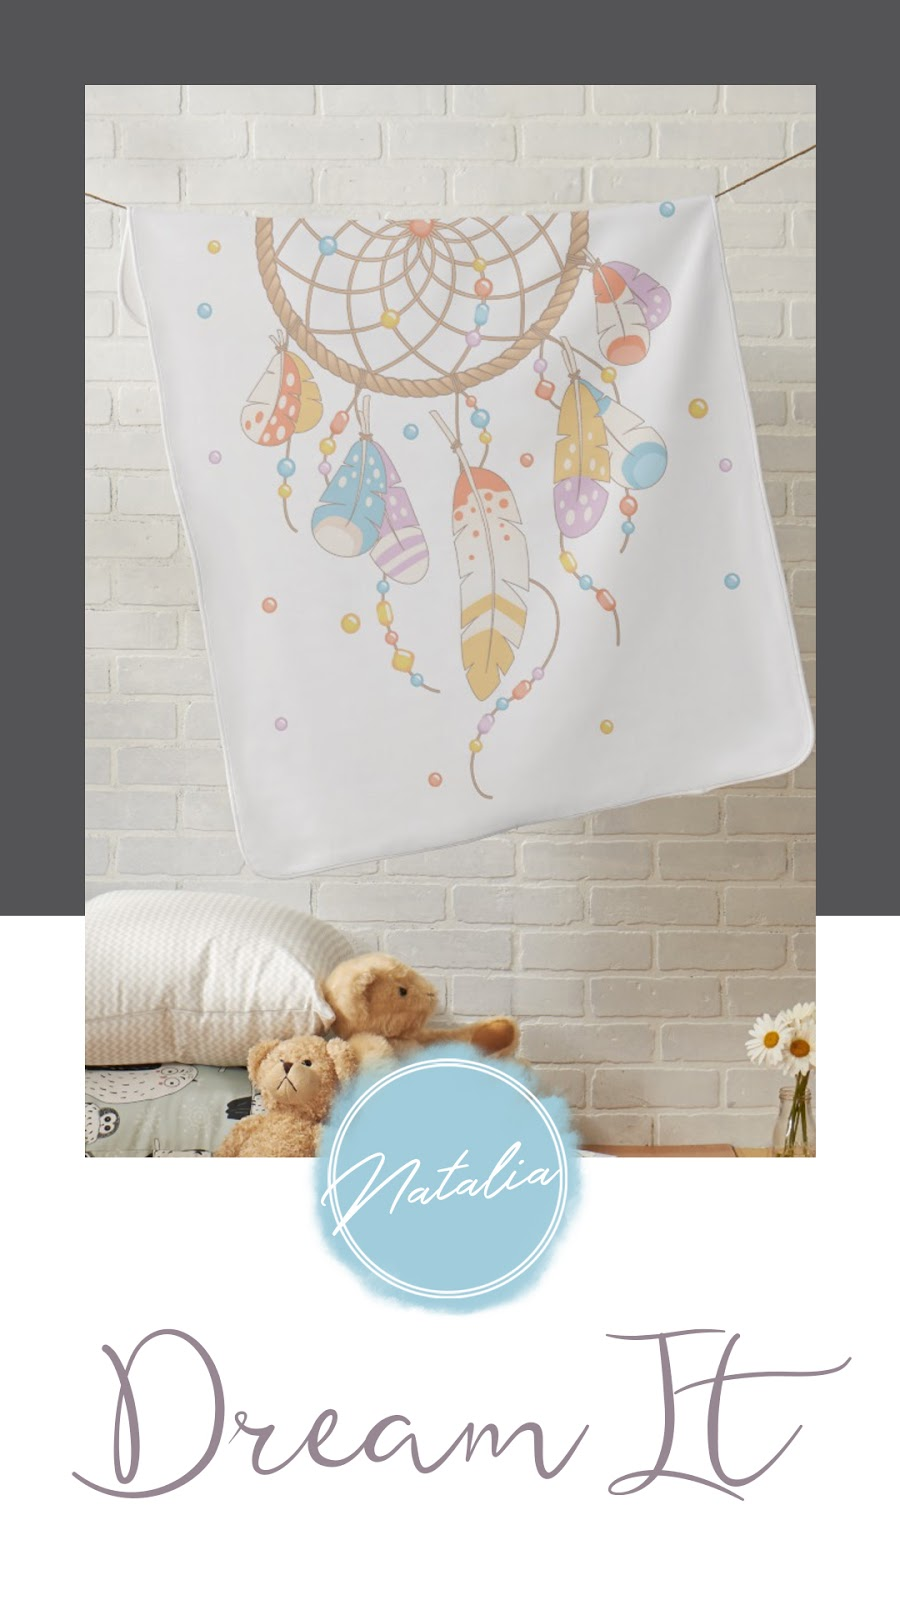 Boho chic dreamcatcher baby shower and birthday collection. Featuring personalized baby receiving blanket. In a yellow, purple, orange, and blue color palette.